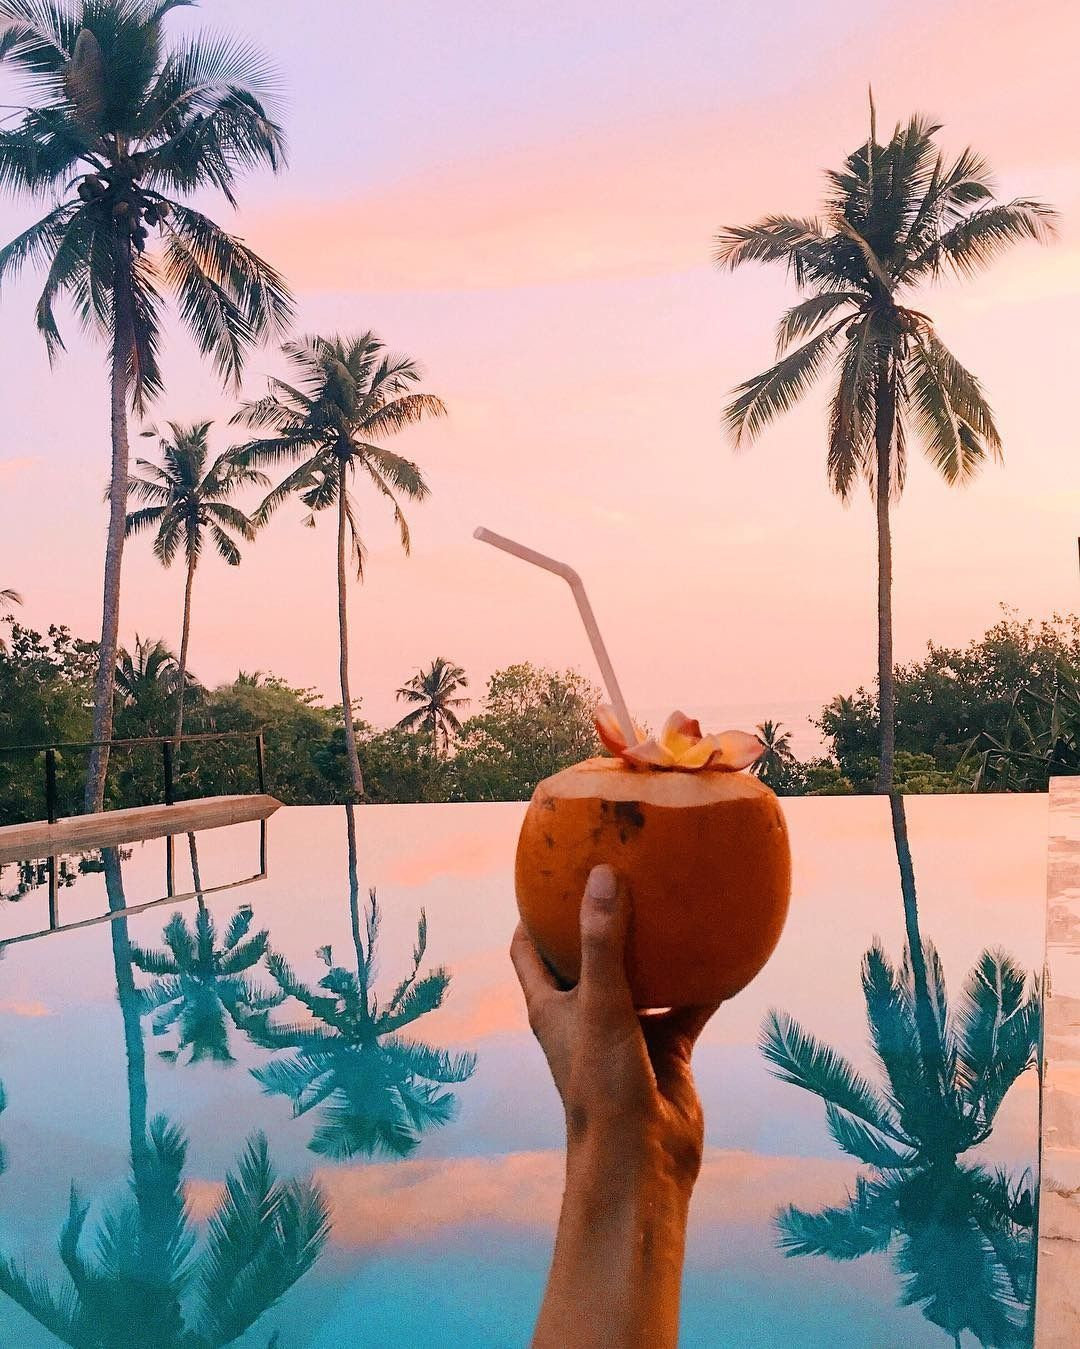 Kirsty On Instagram Sunsets Coconuts Are Always A Good Idea Just Add Vodka Kadjuhouse Theasiacollective